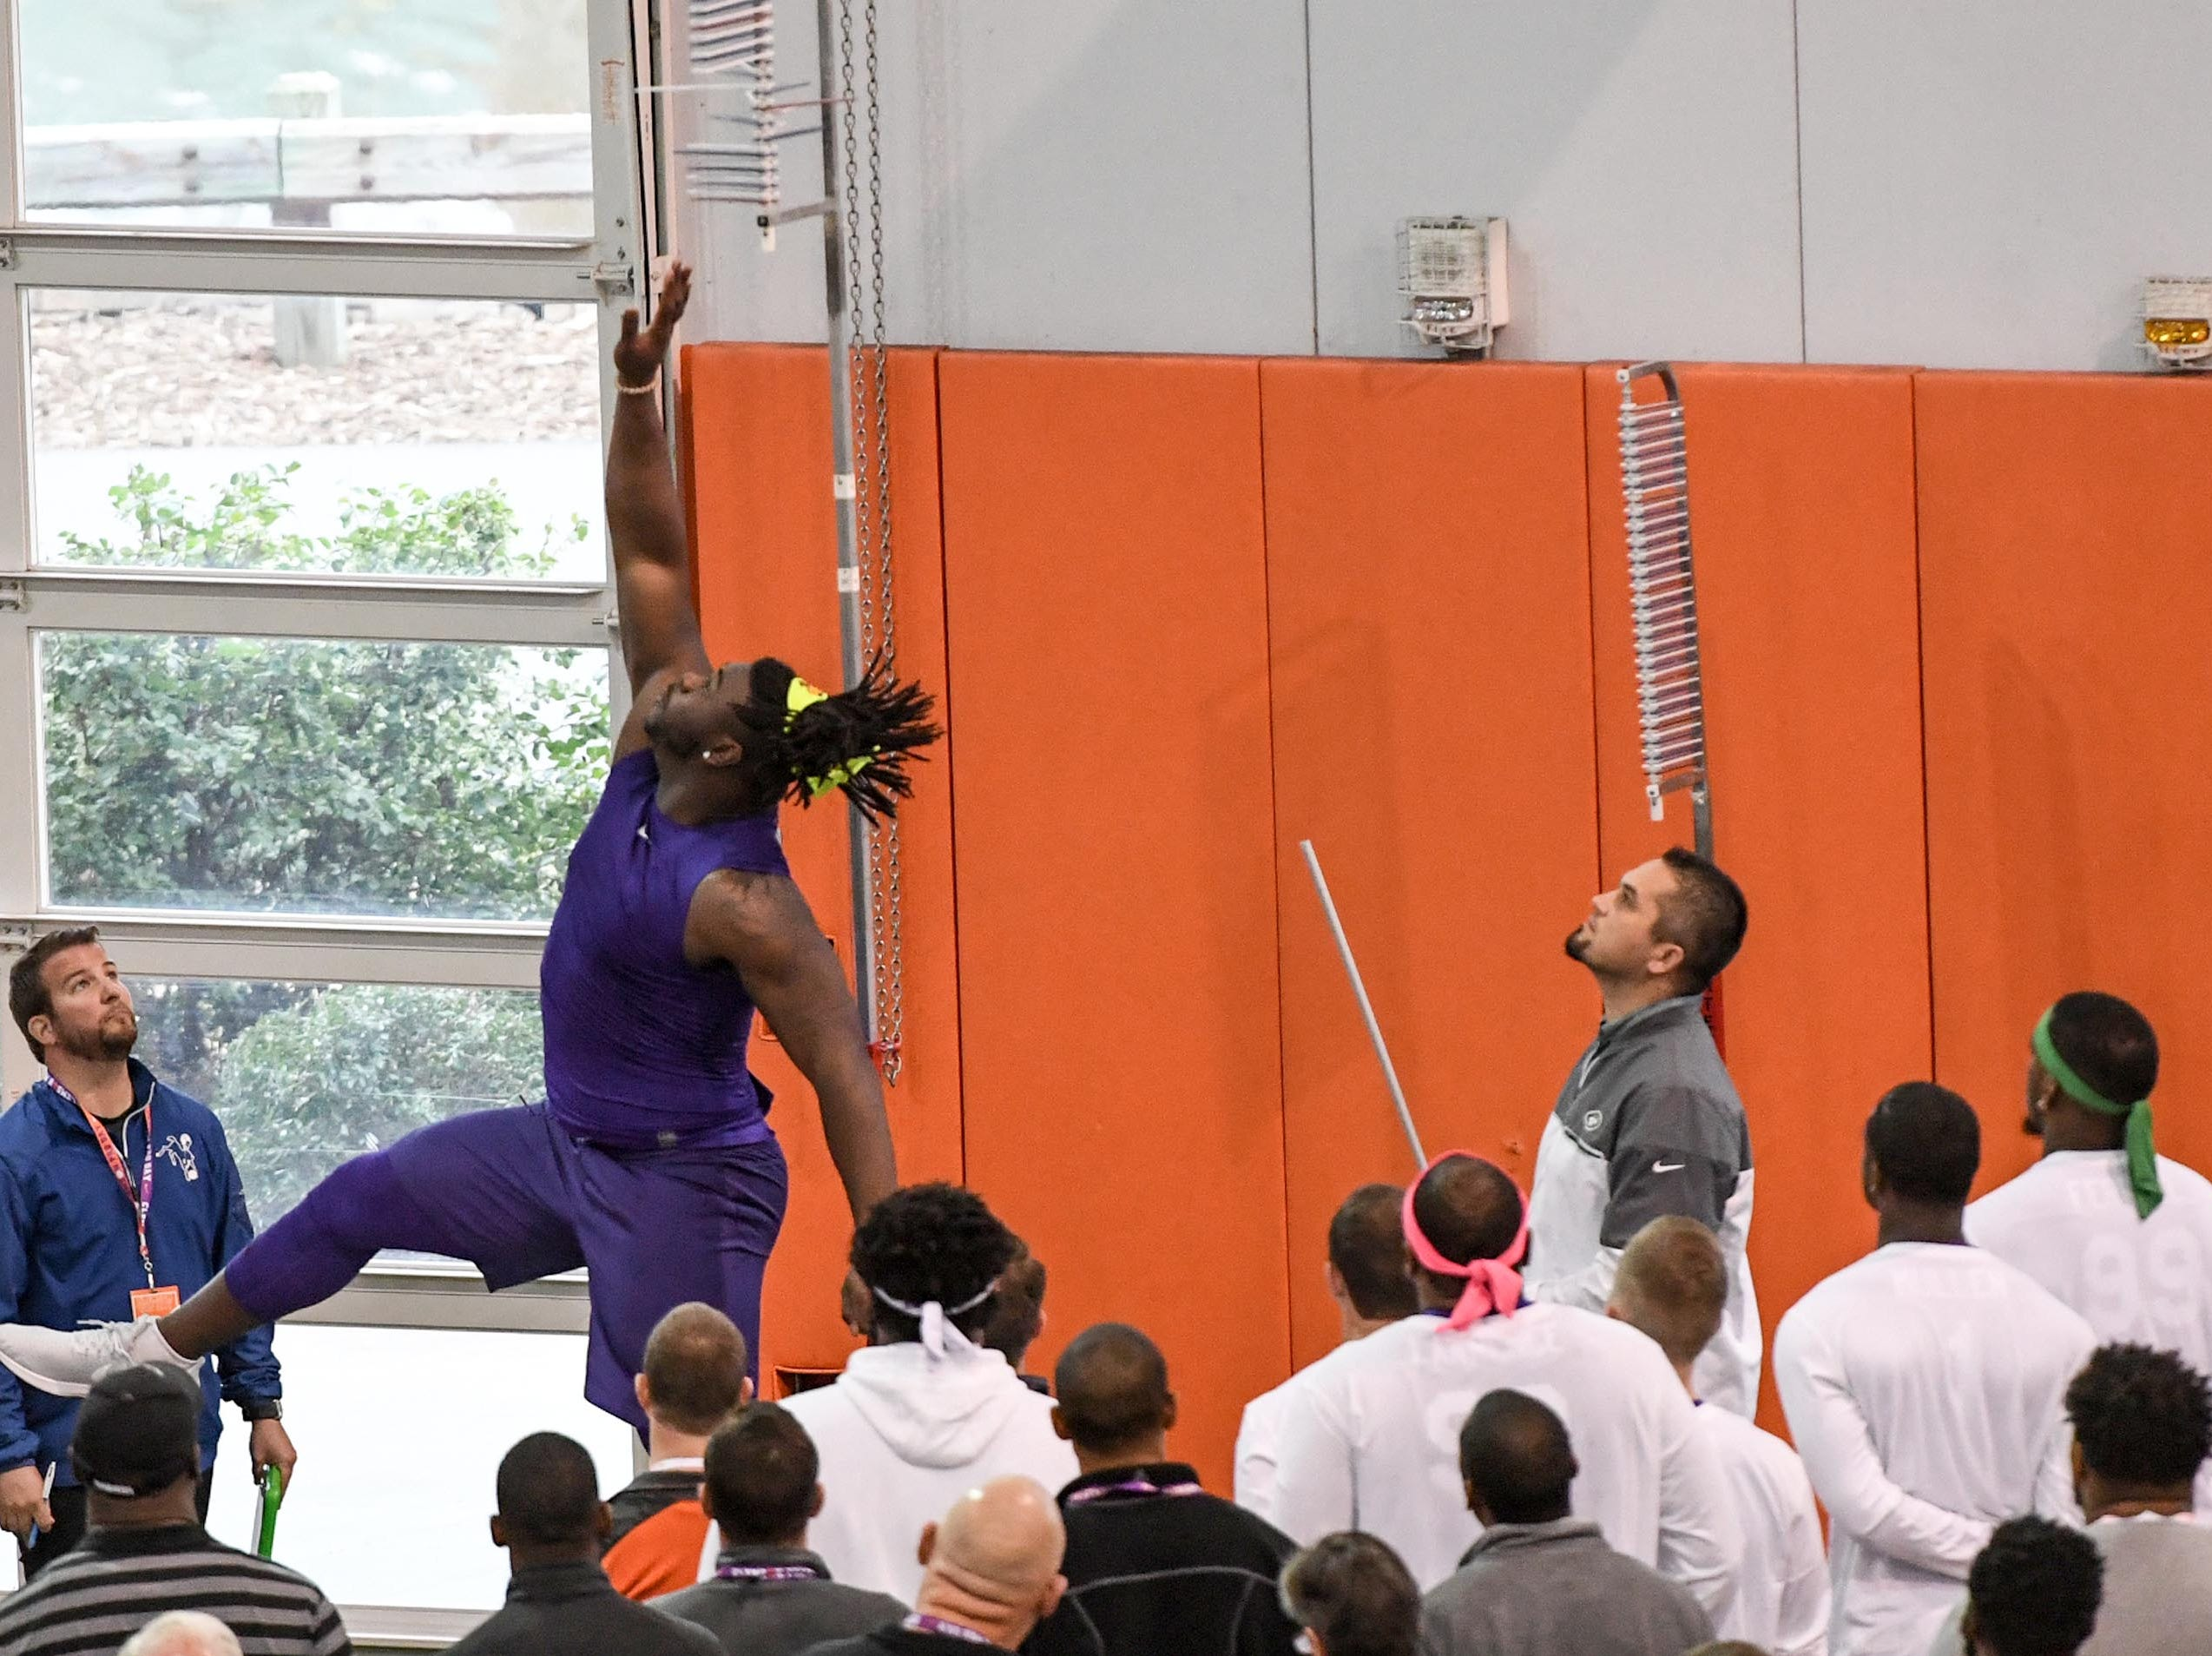 Defensive lineman Albert Huggins Jr. leaps 28.5 inches in a vertical leap test during Clemson pro day at the Poe Indoor Facility in Clemson Thursday, March 14, 2019.